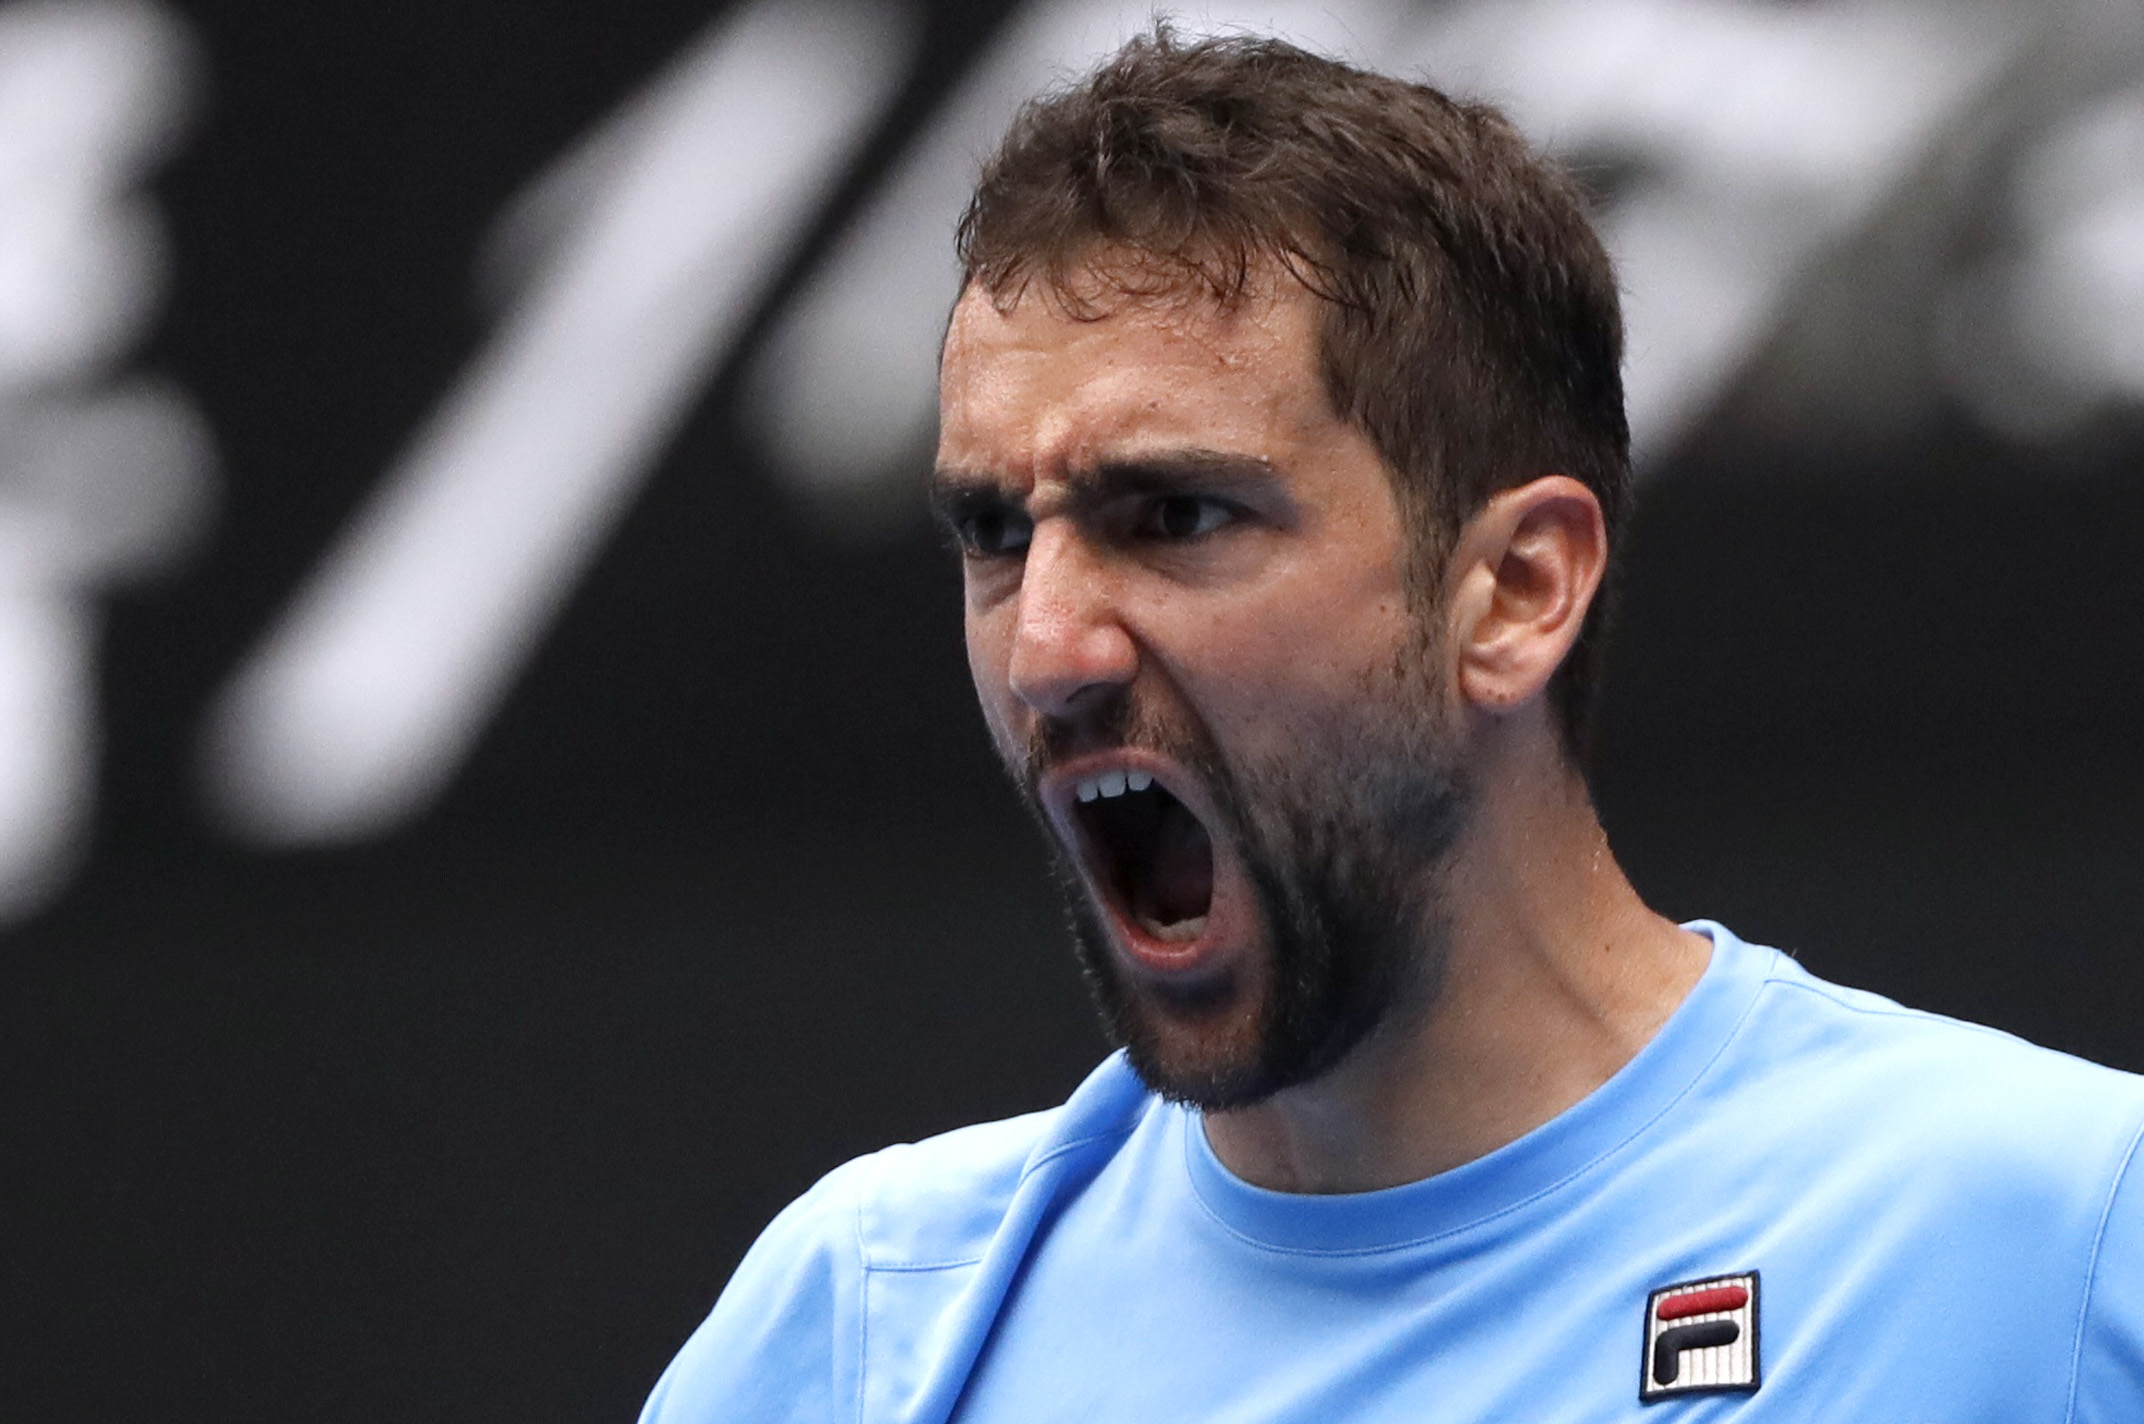 Tennis - Australian Open - Second Round - Melbourne Park, Melbourne, Australia, January 16, 2019. Croatia's Marin Cilic reacts upon winning the match against Mackenzie McDonald of the U.S. REUTERS/Aly Song - UP1EF1G0FY13A